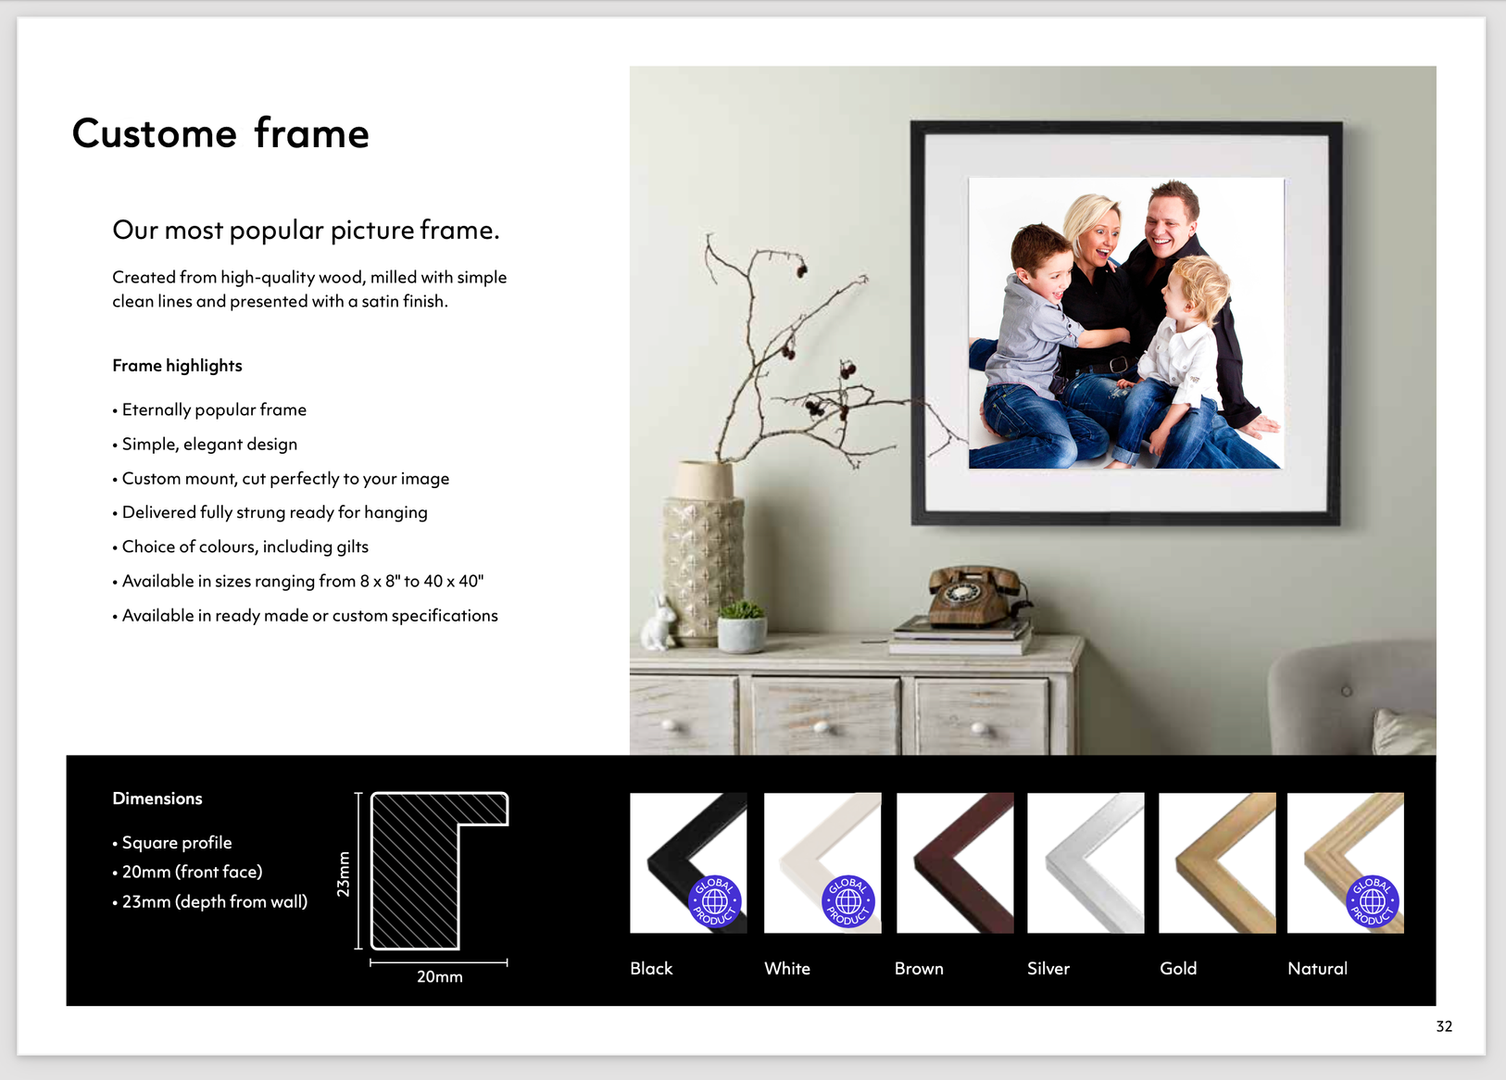 Custome Frames